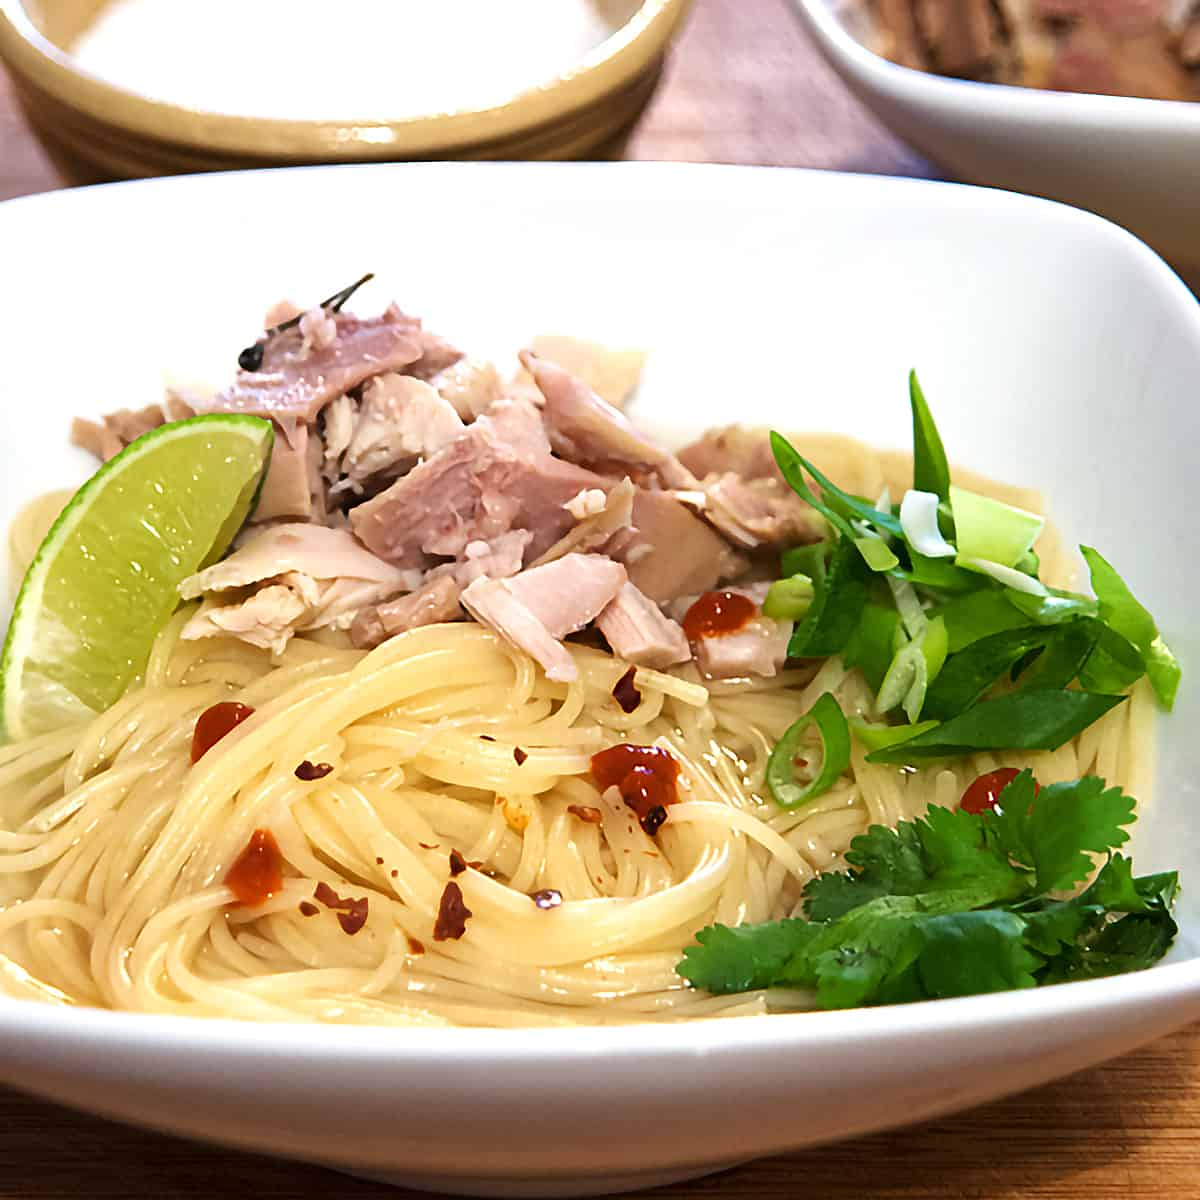 Noodles, turkey, and accompaniments in a white serving bowl.